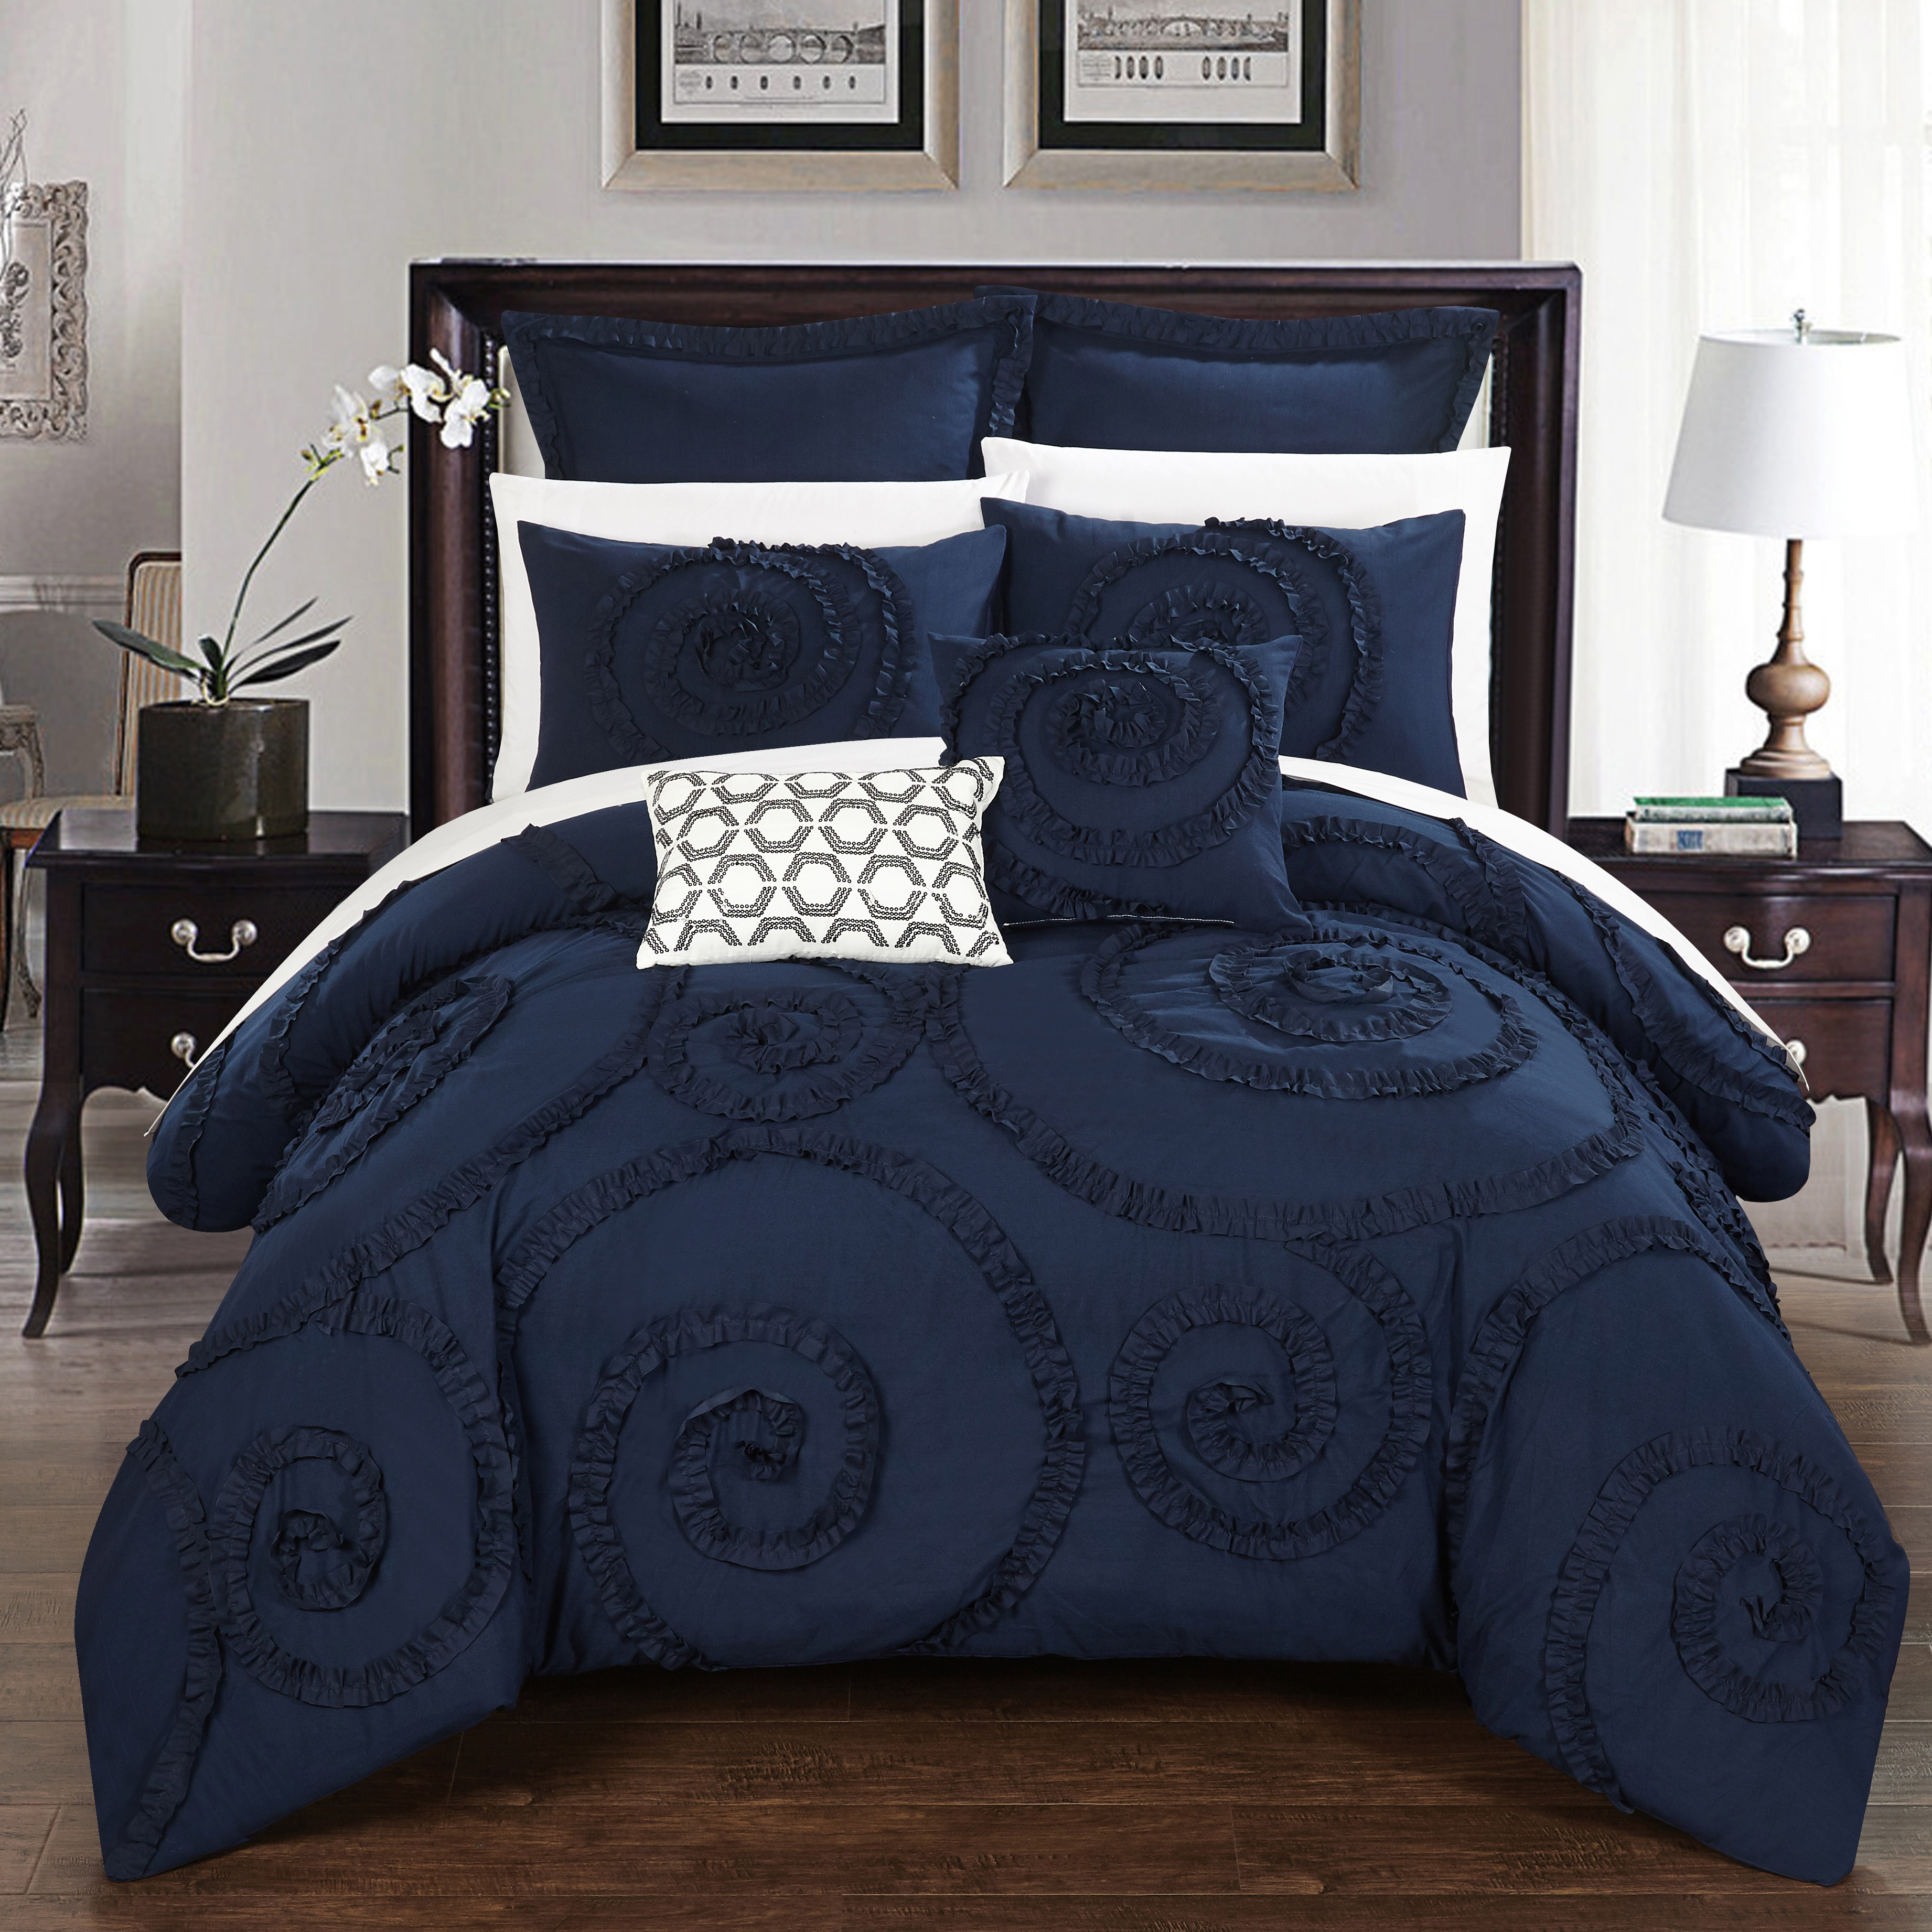 Chic Home 11 Piece Rosamond Floral Ruffled Etched